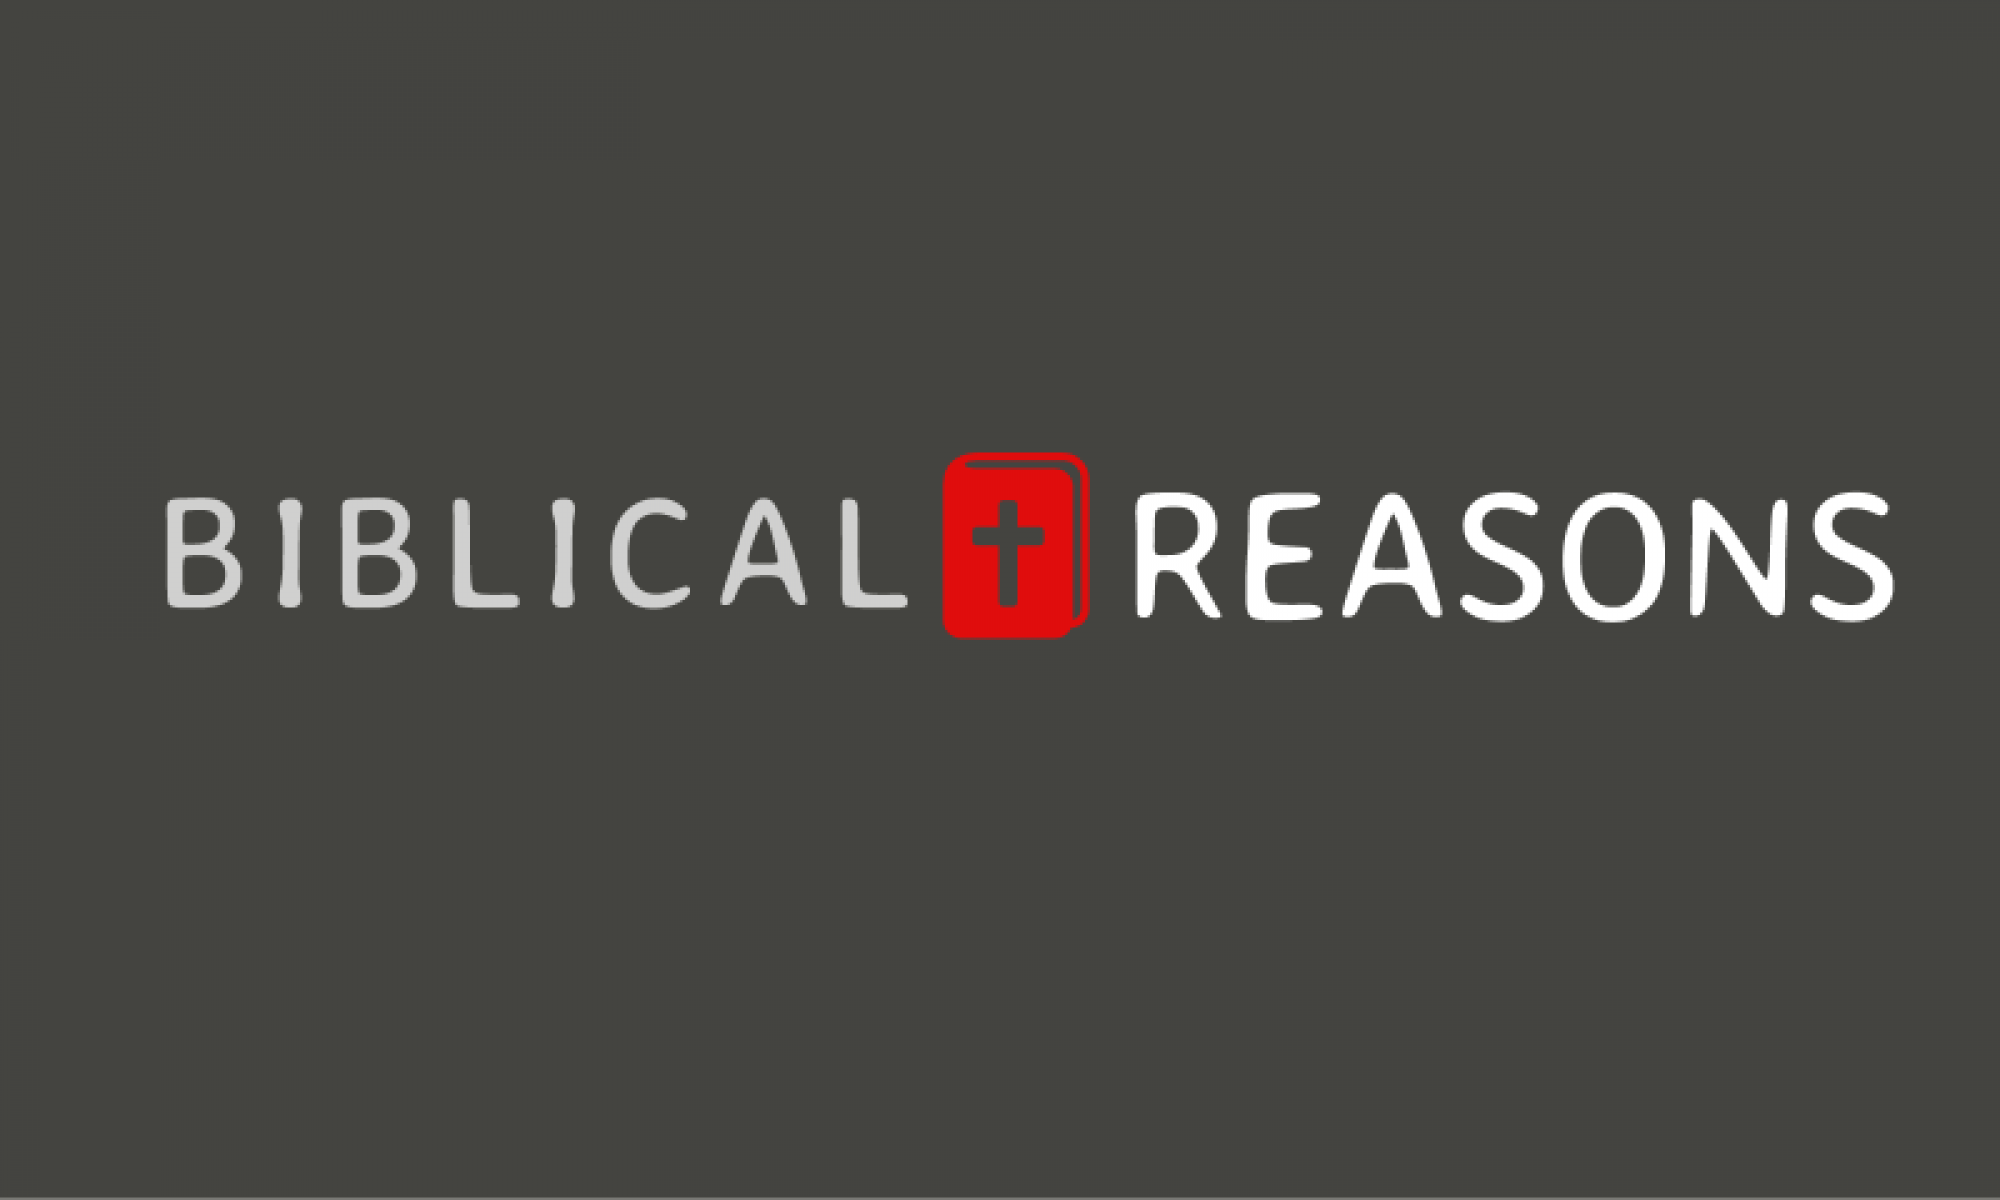 Biblical Reasons